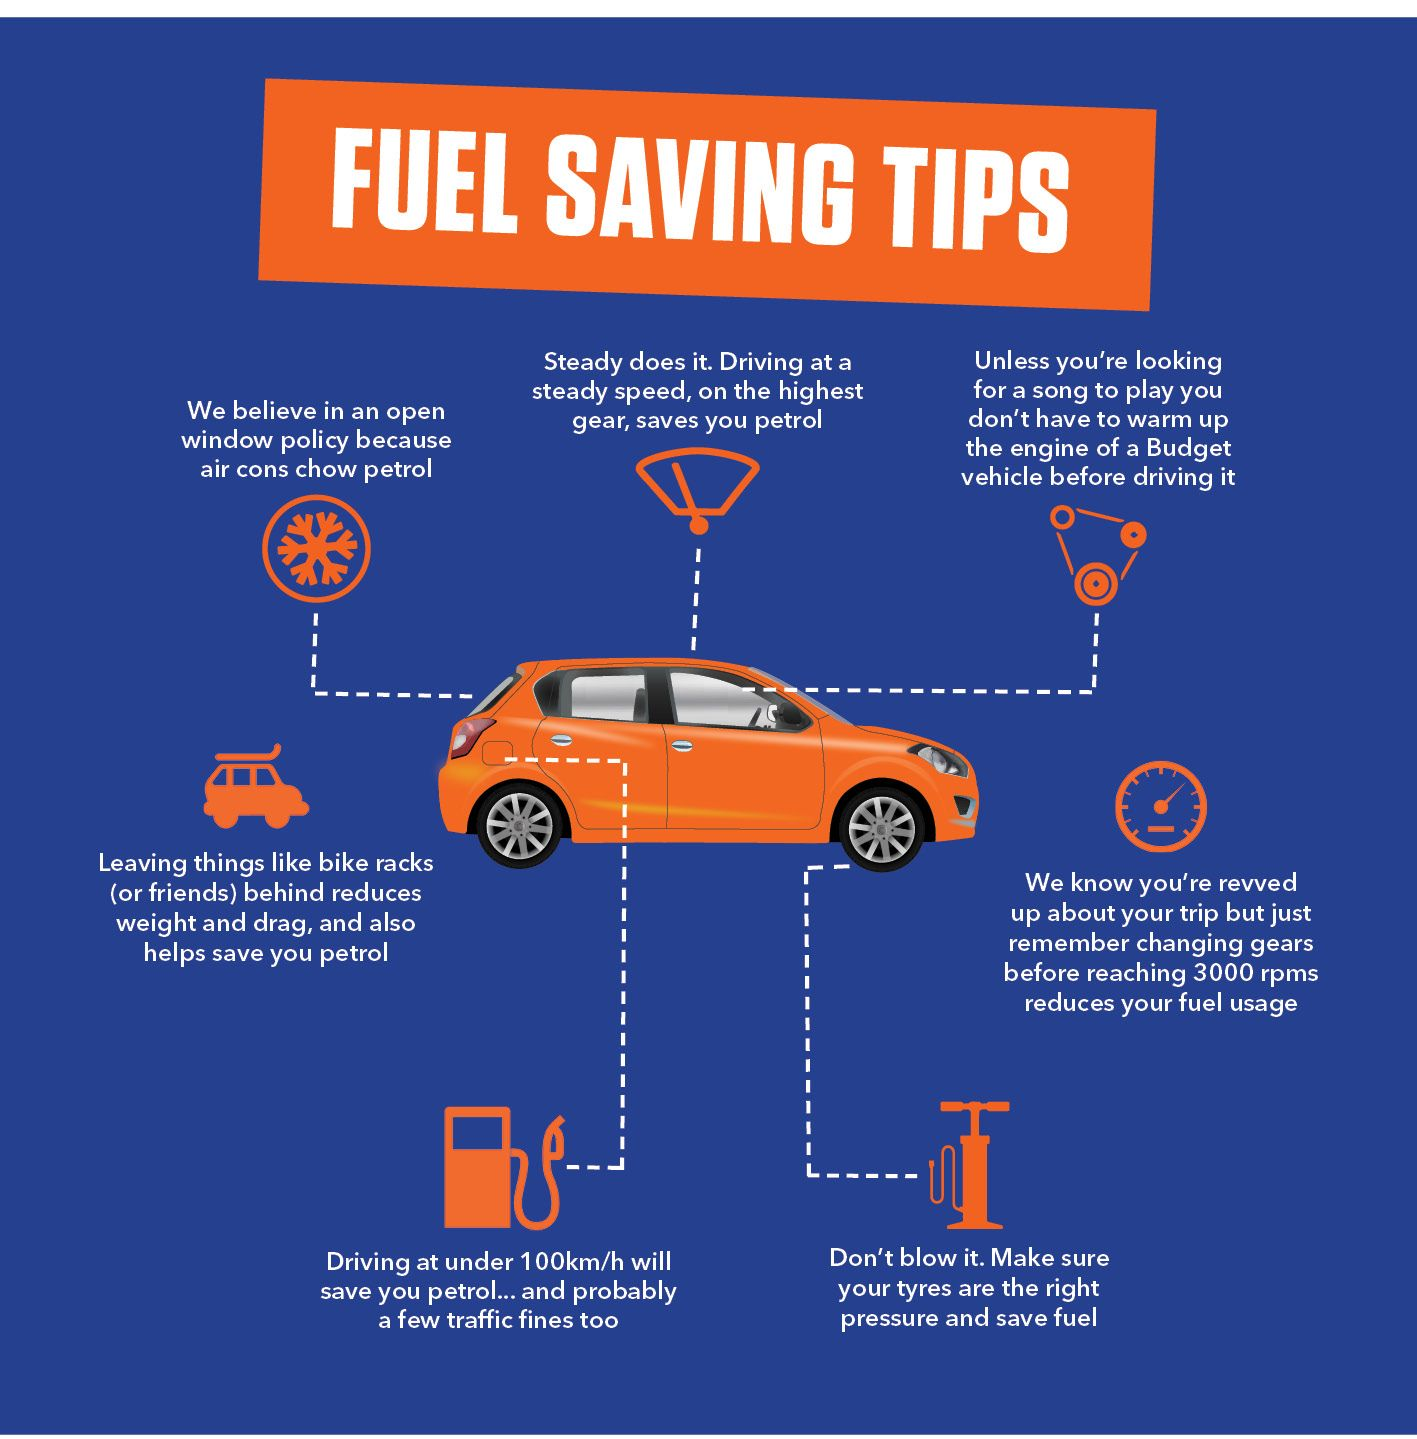 Fuel Consumption Is At Its Highest When You're Doing What